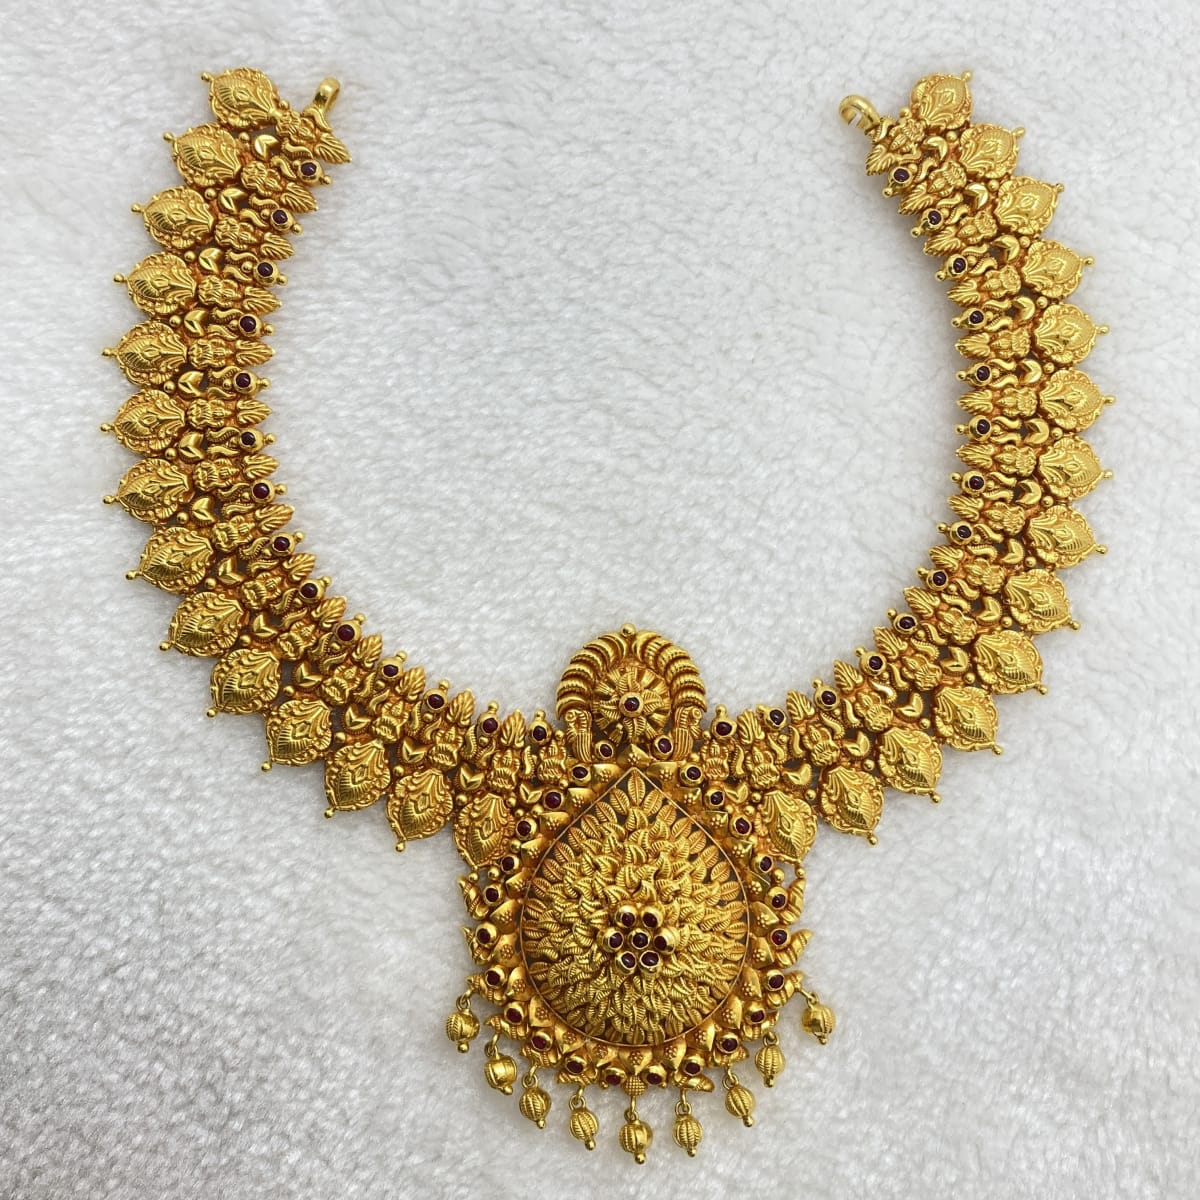 Fancy Antique Gold Beed Necklace Gj0022